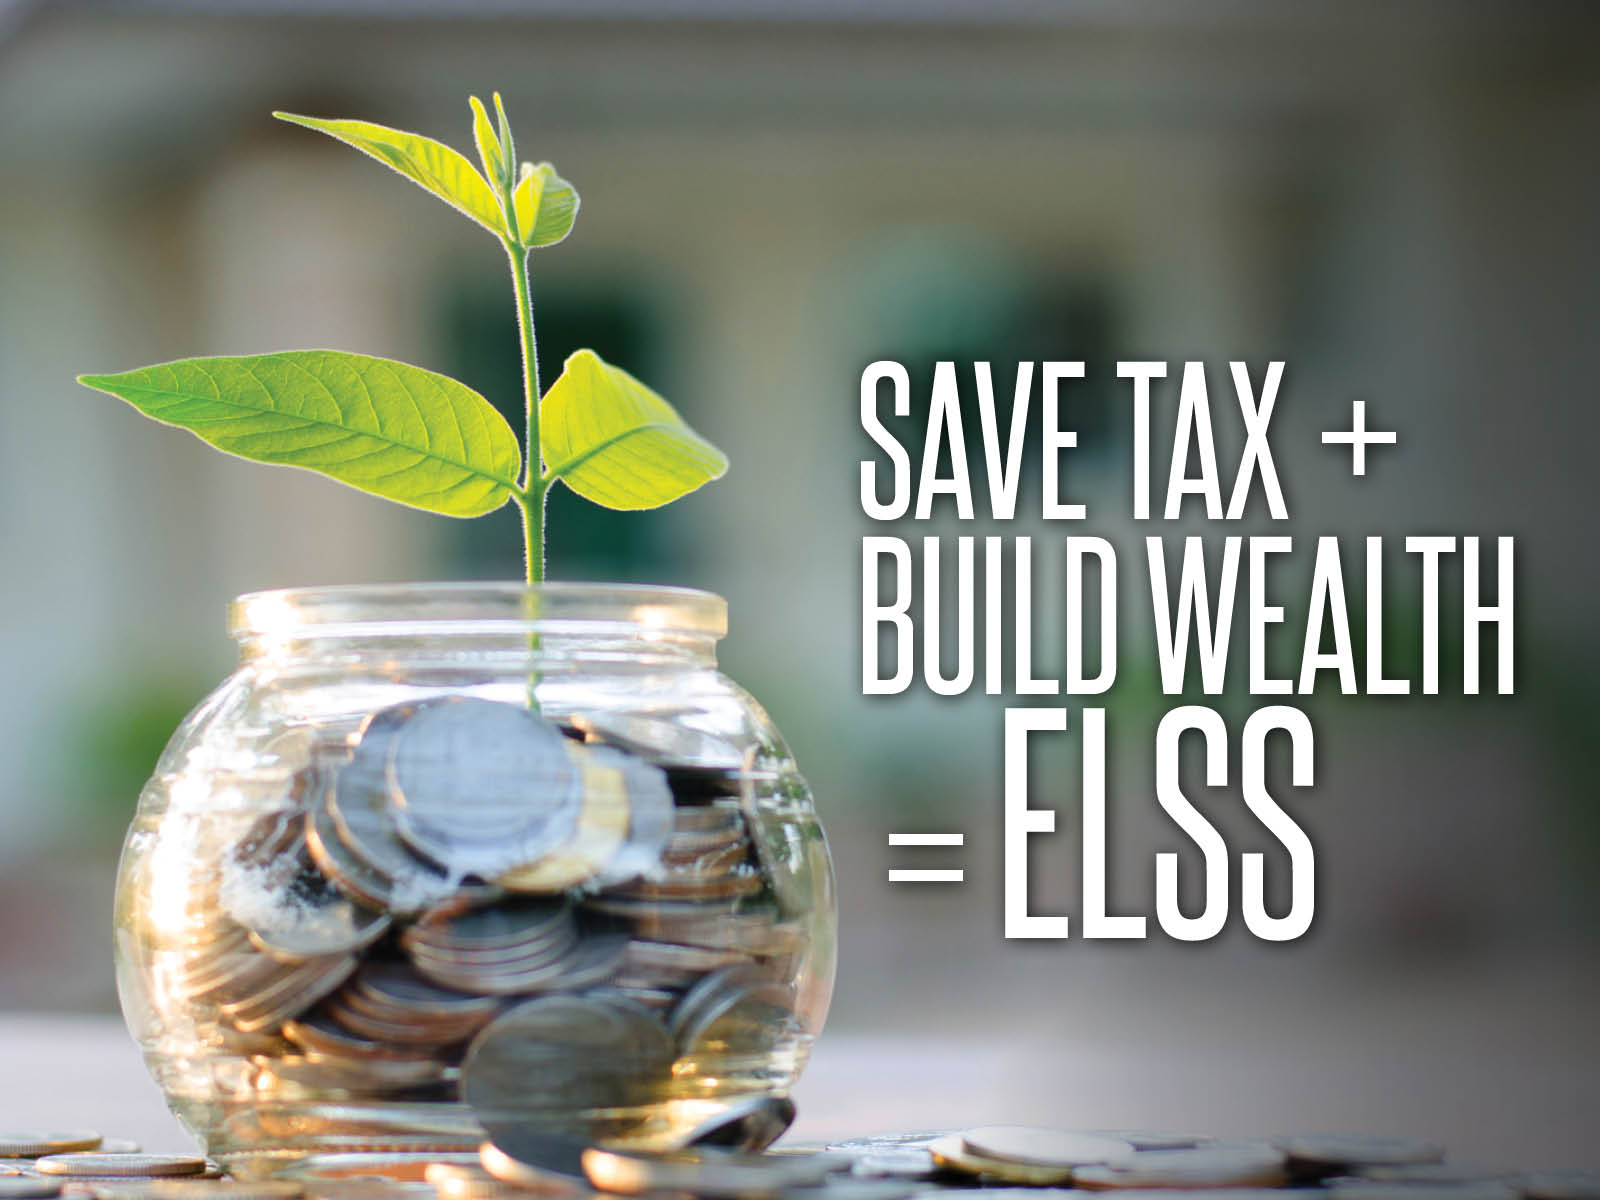 Making Tax Investments! Here is how to get best returns - ELSS